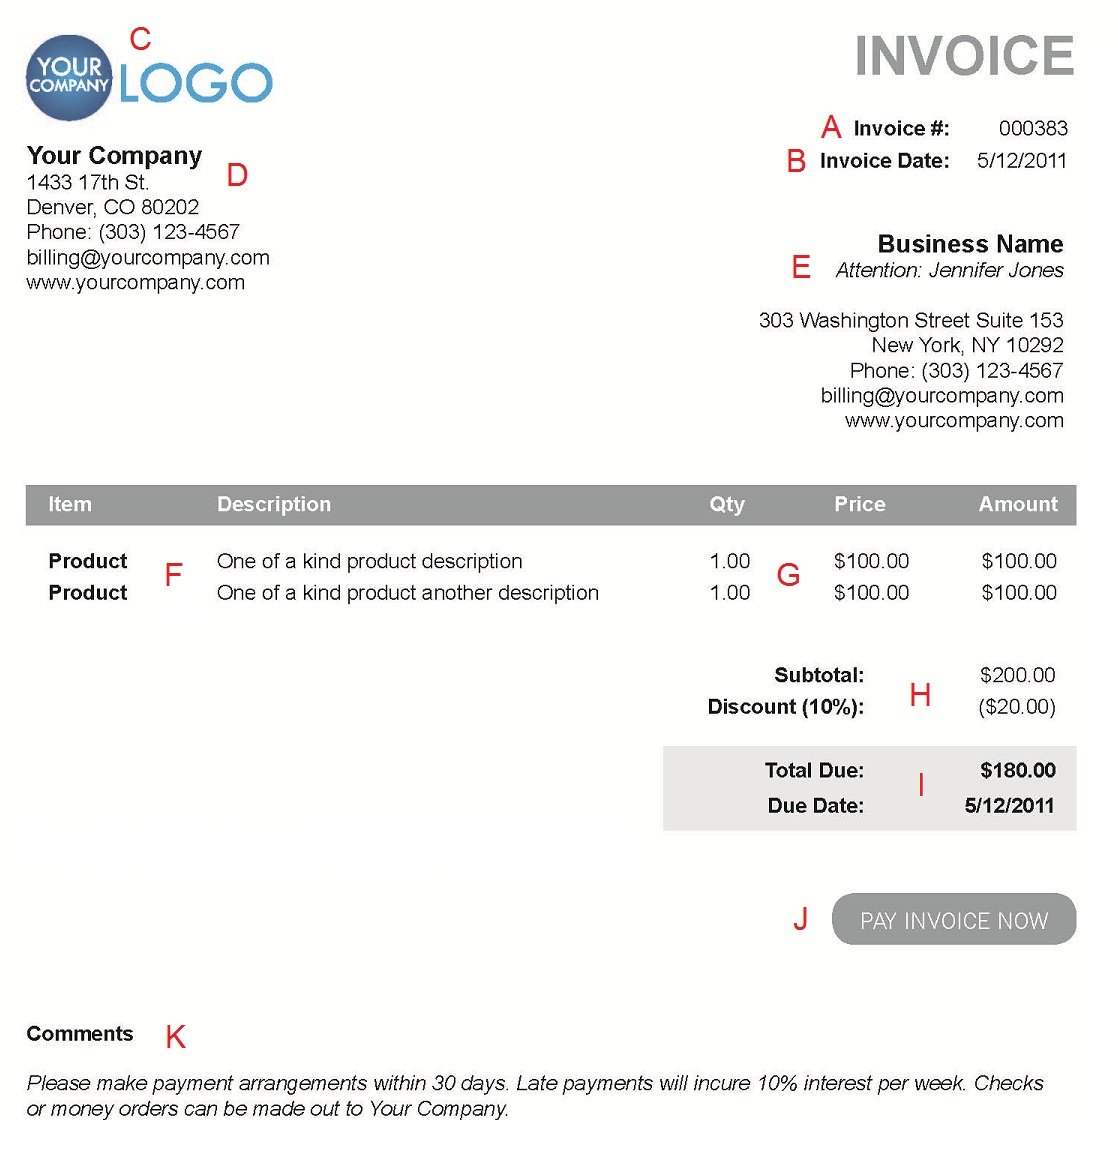 Coolmathgamesus  Gorgeous The  Different Sections Of An Electronic Payment Invoice With Great A  With Enchanting Xin Invoice Also Open Office Templates Invoice In Addition  Honda Accord Invoice And Dealer Invoice Prices For New Cars As Well As Ford Dealer Invoice Price Additionally Canadian Customs Invoice Instructions From Paysimplecom With Coolmathgamesus  Great The  Different Sections Of An Electronic Payment Invoice With Enchanting A  And Gorgeous Xin Invoice Also Open Office Templates Invoice In Addition  Honda Accord Invoice From Paysimplecom